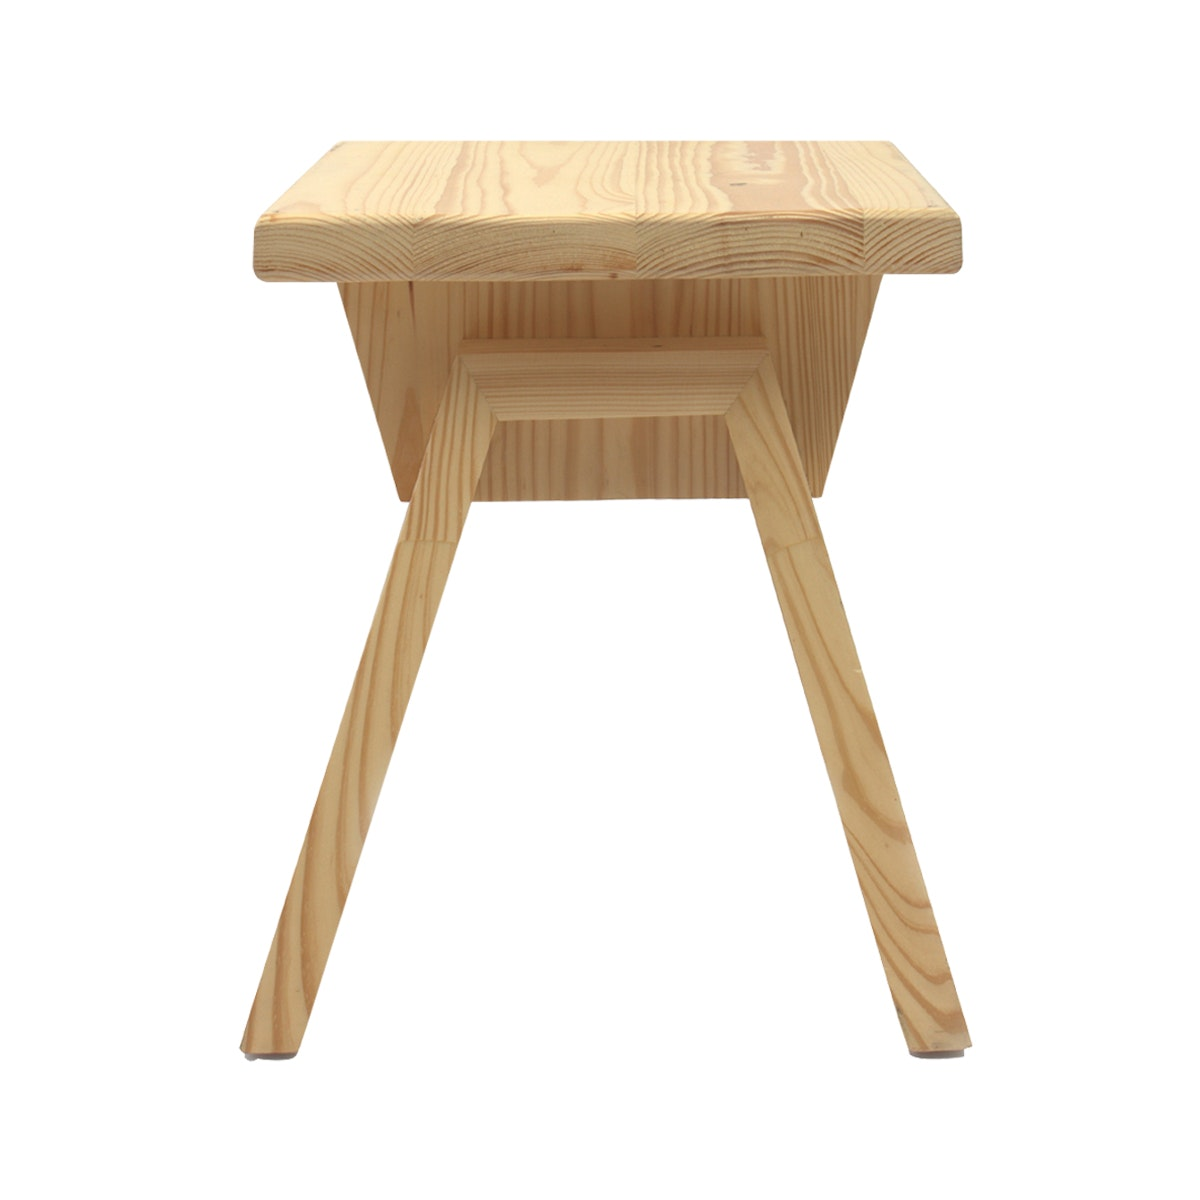 Kreakita Bellflower Chair